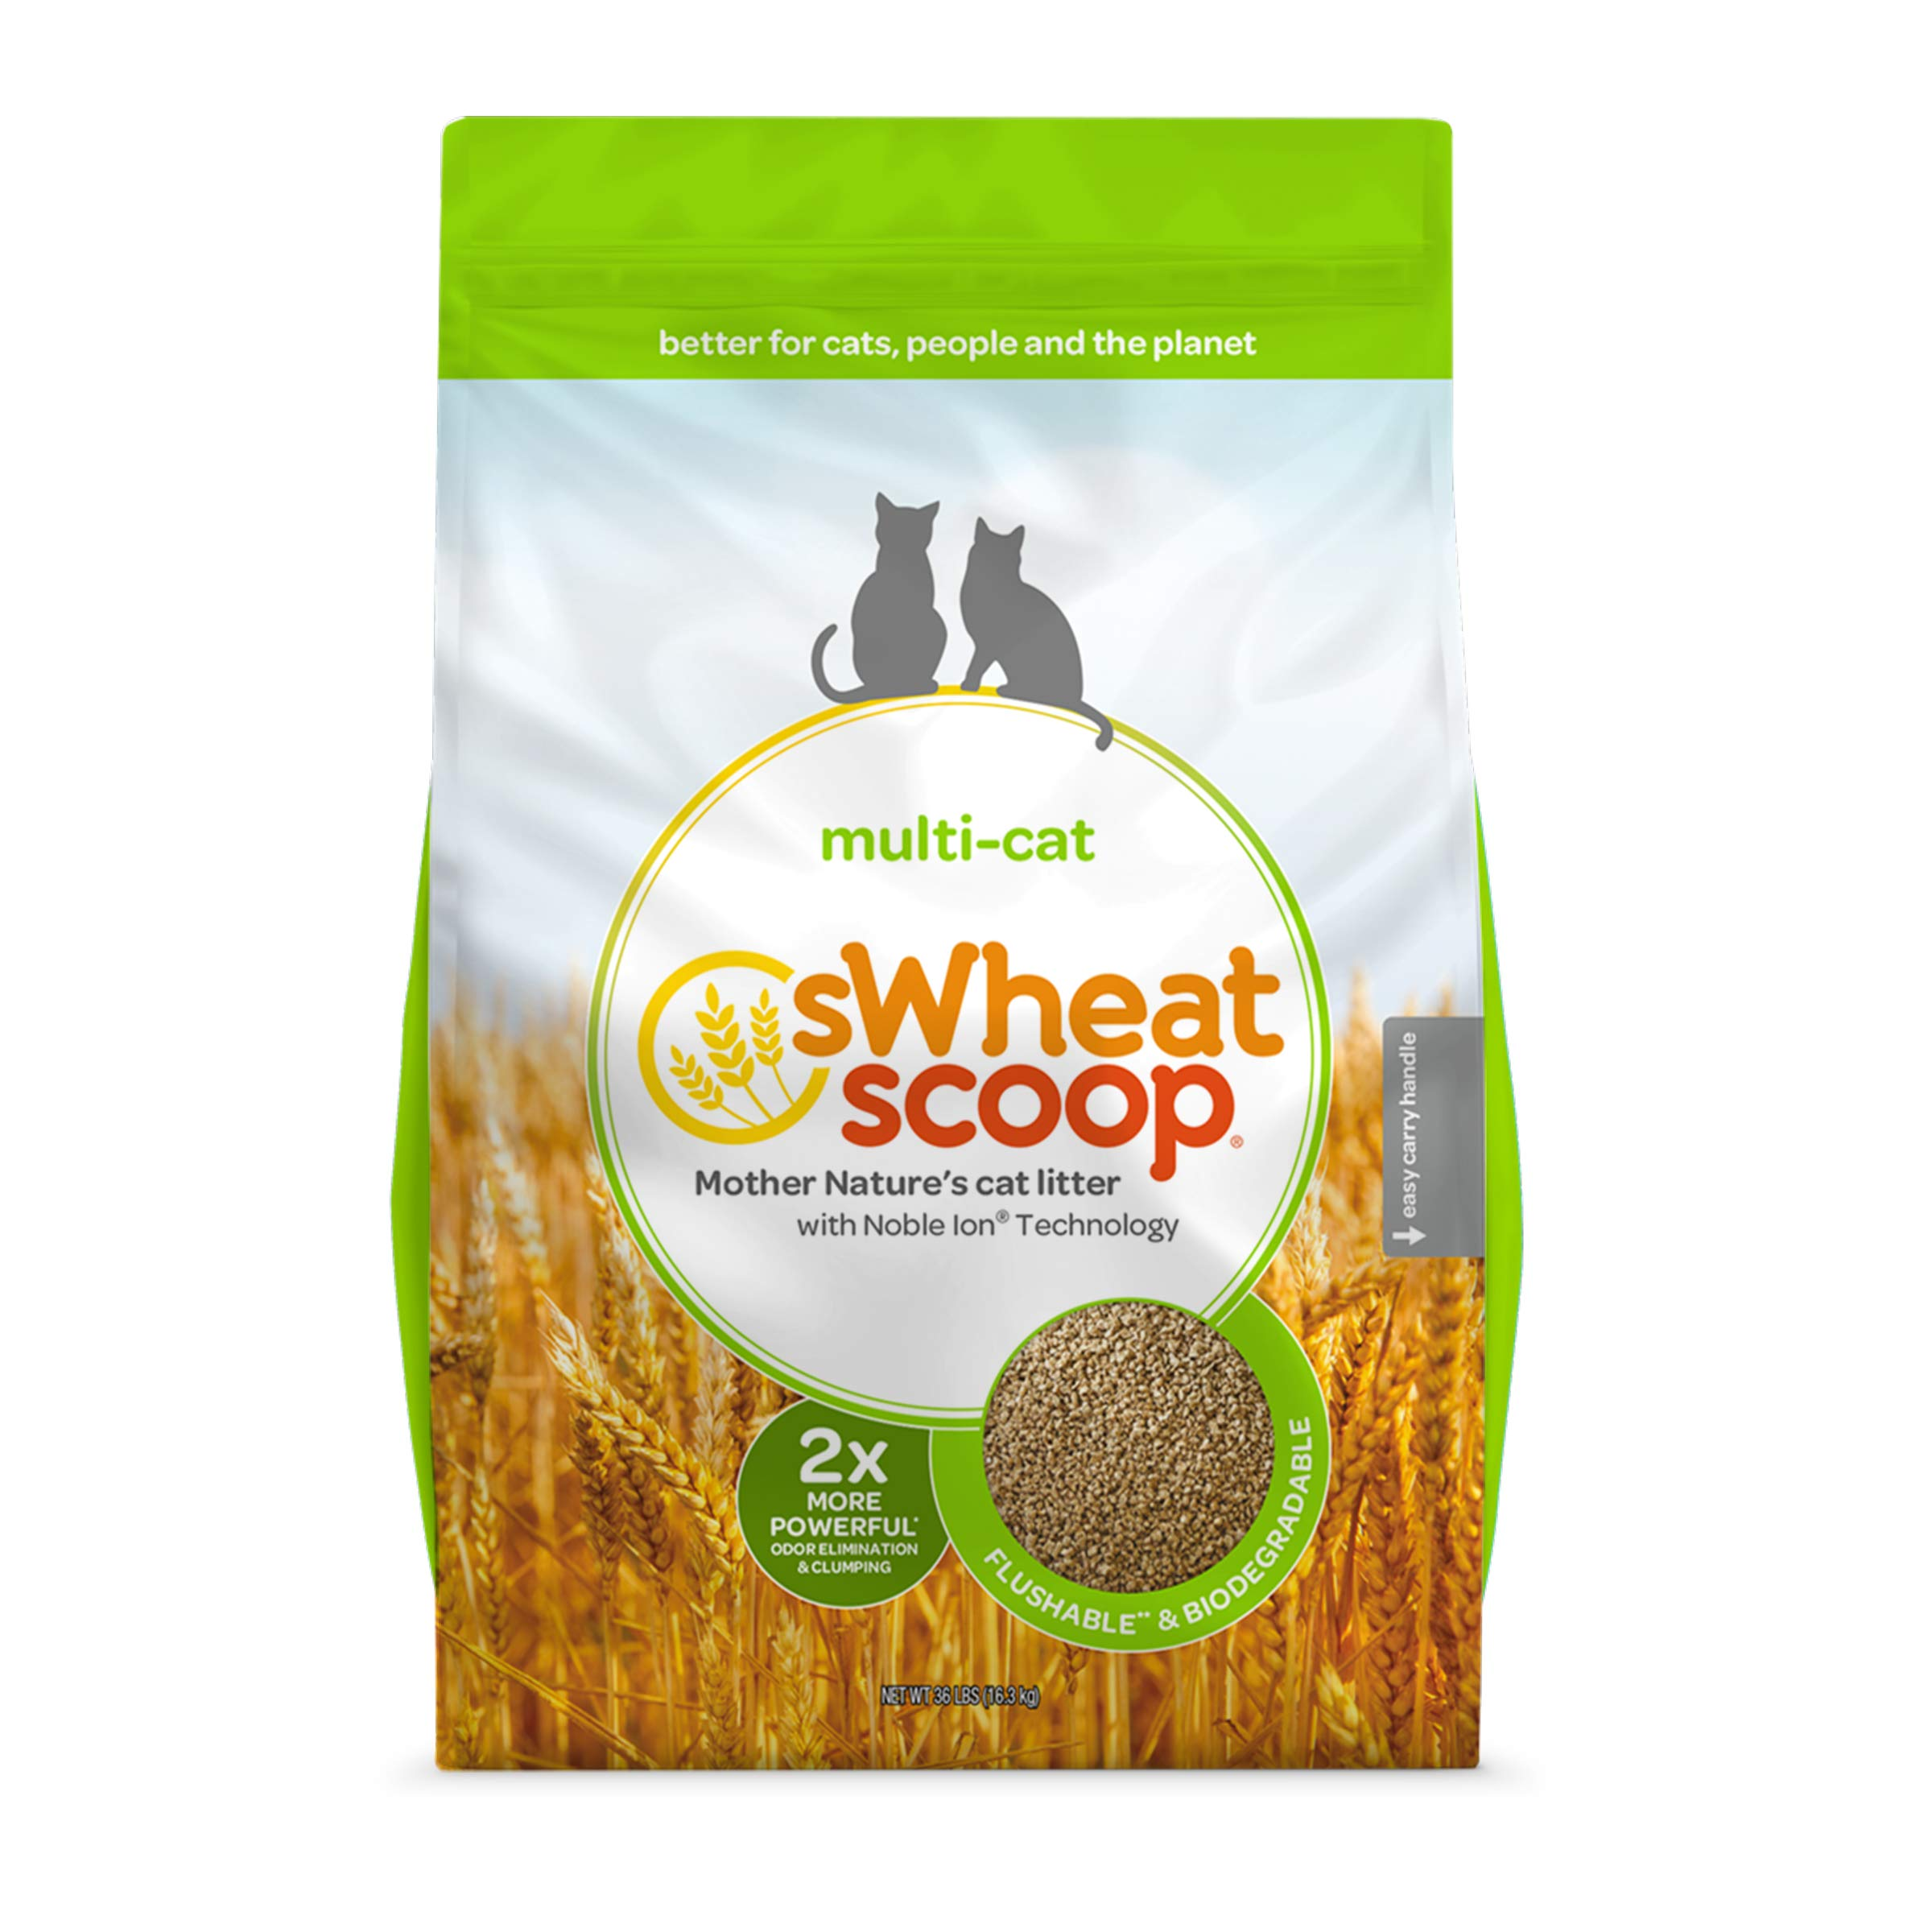 sWheat Scoop Multi-Cat All-Natural Clumping Cat Litter, 36lb Bag by sWheat Scoop